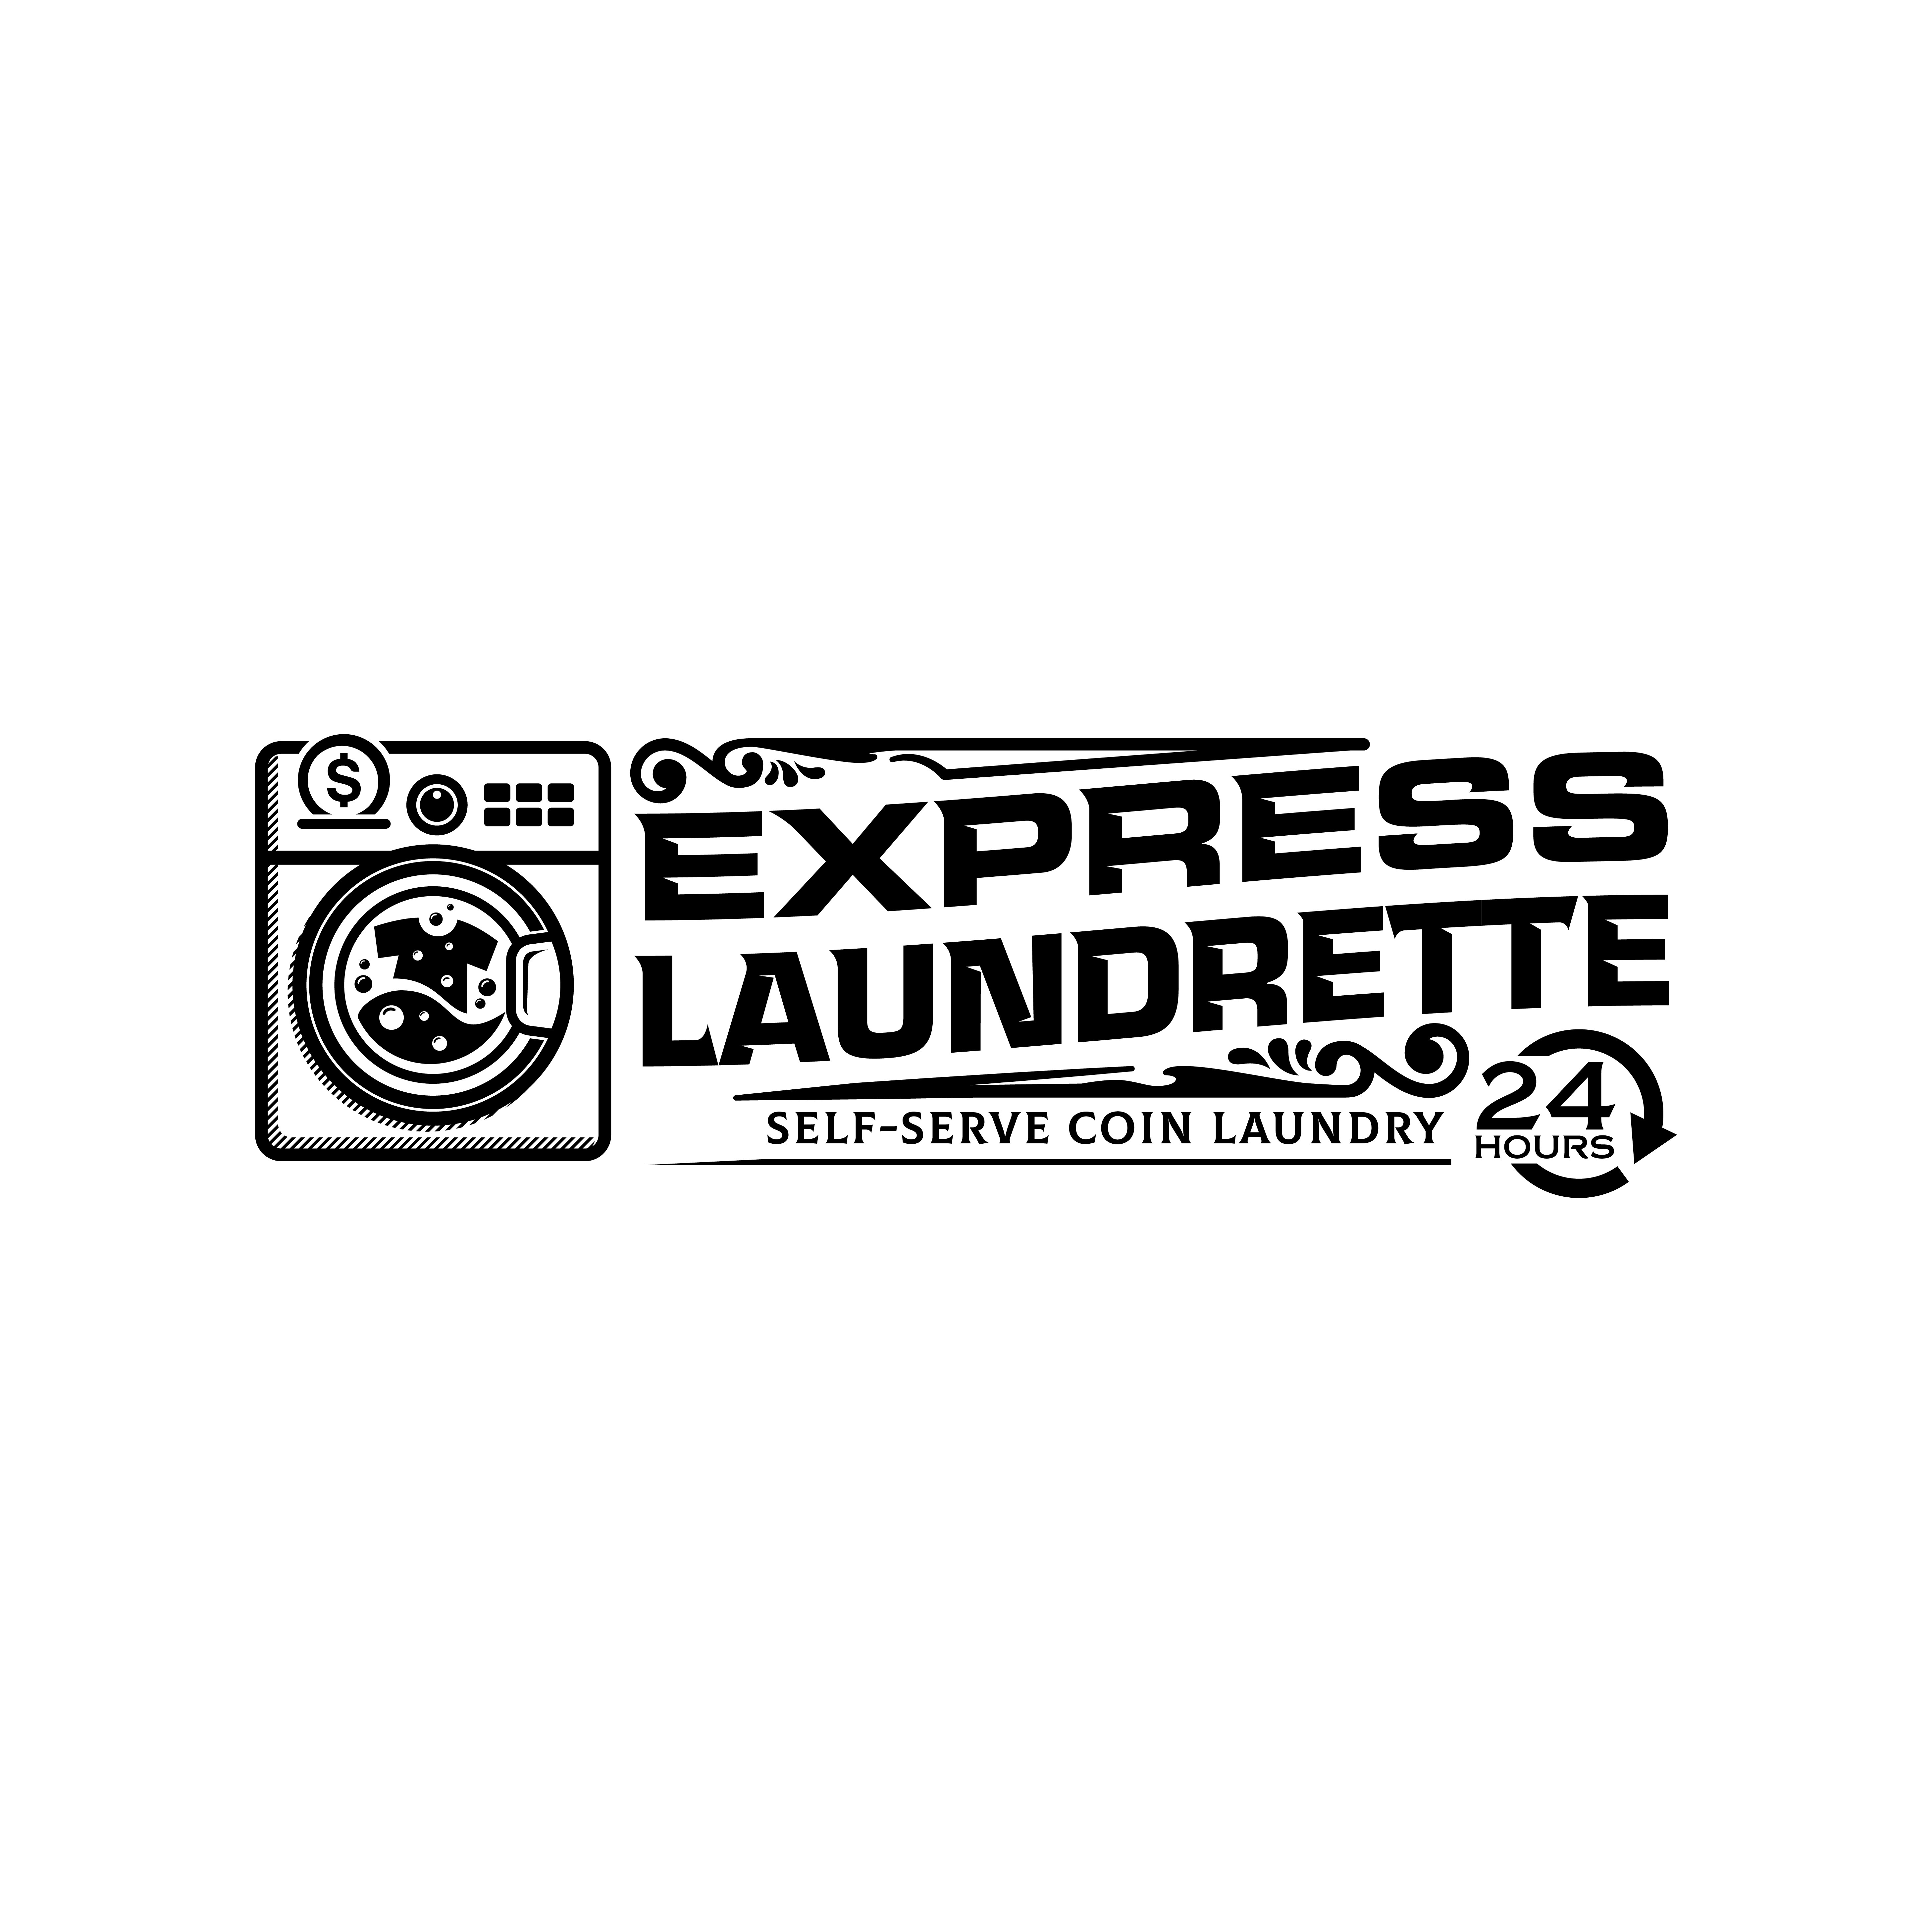 Coin laundry with crisp and sophisticated iconography to brand around